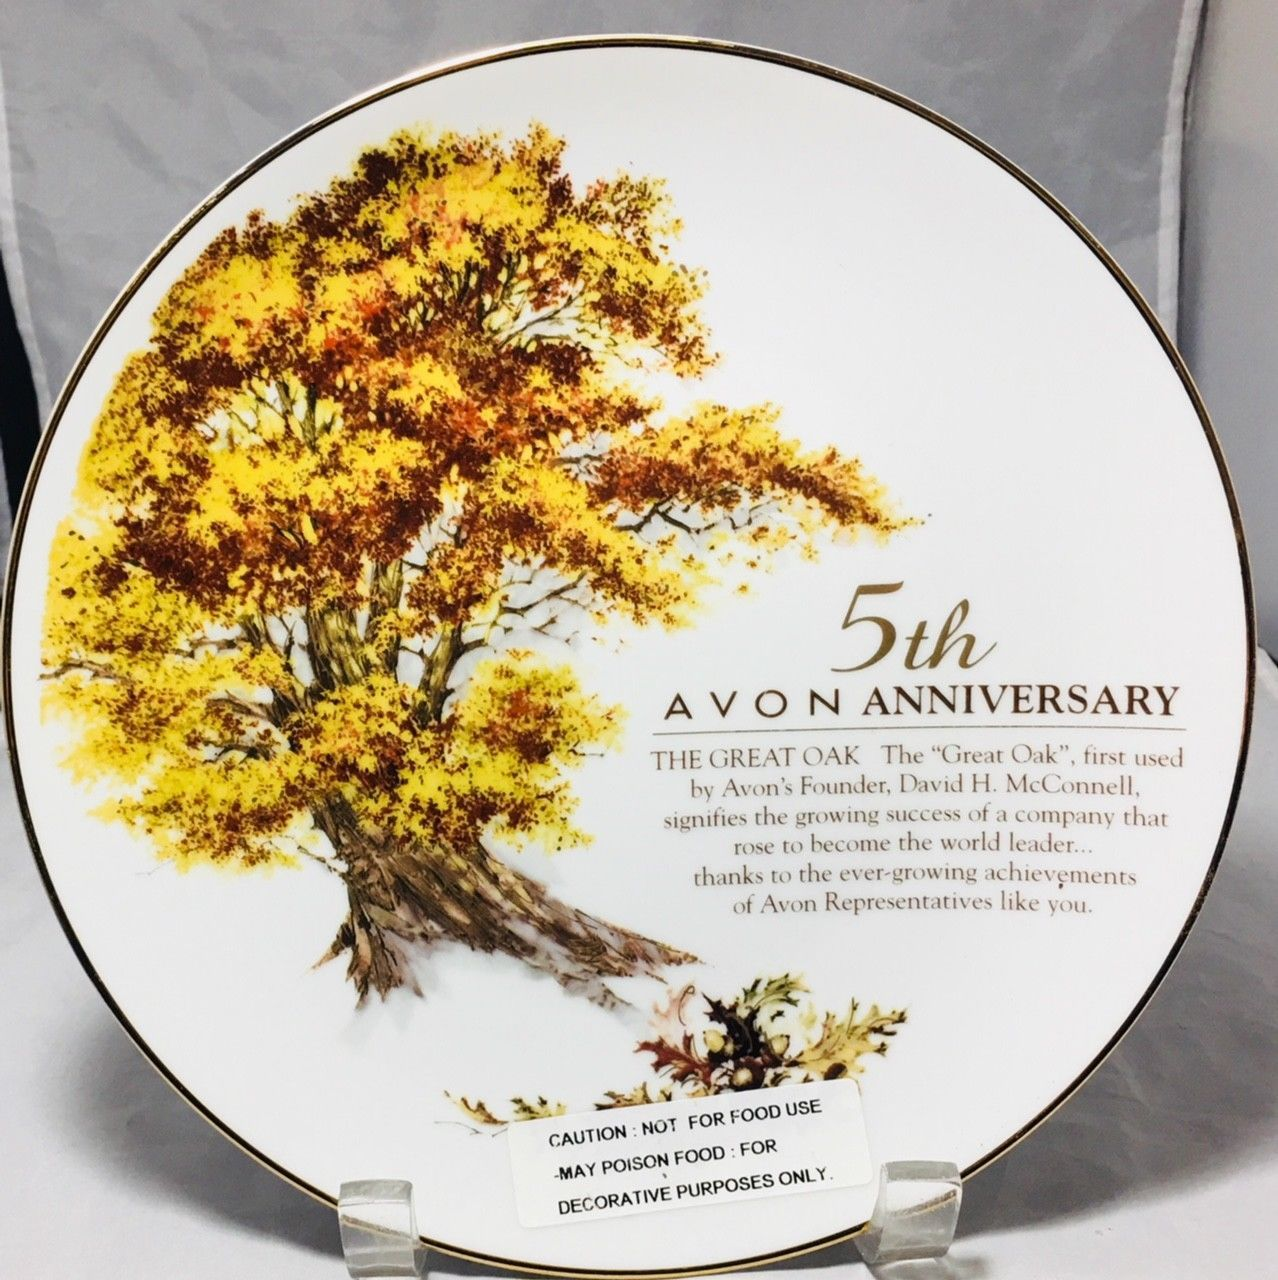 AVON 5TH ANNIVERSARY PLATE WITH 22K GOLD RIM